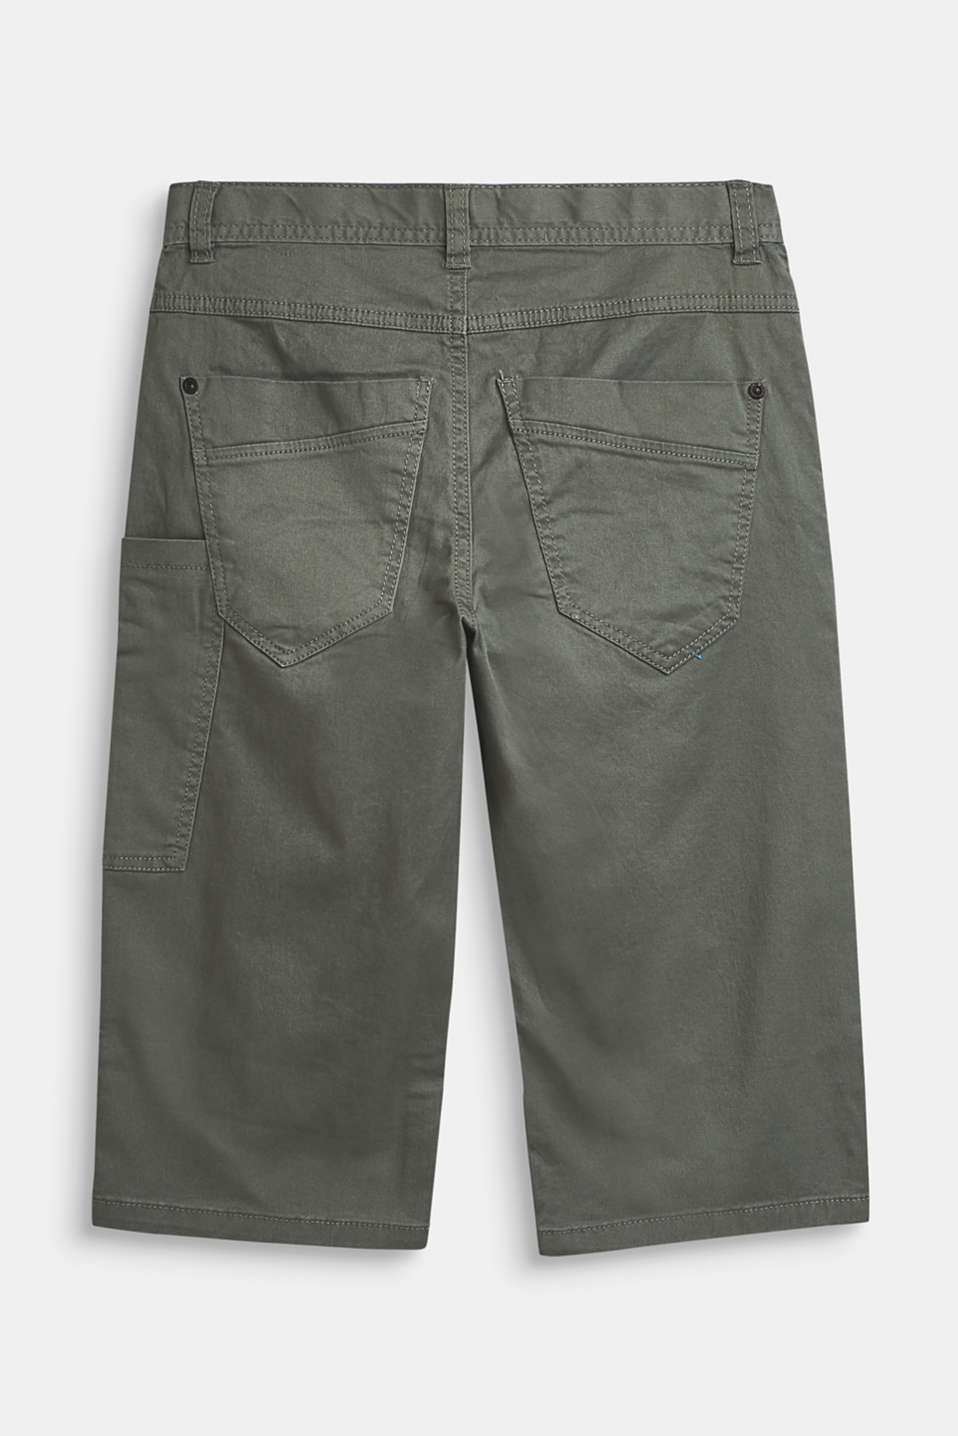 Wide cargo trousers in a 7/8 length, adjustable waistband, LCLIGHT KHAKI, detail image number 1